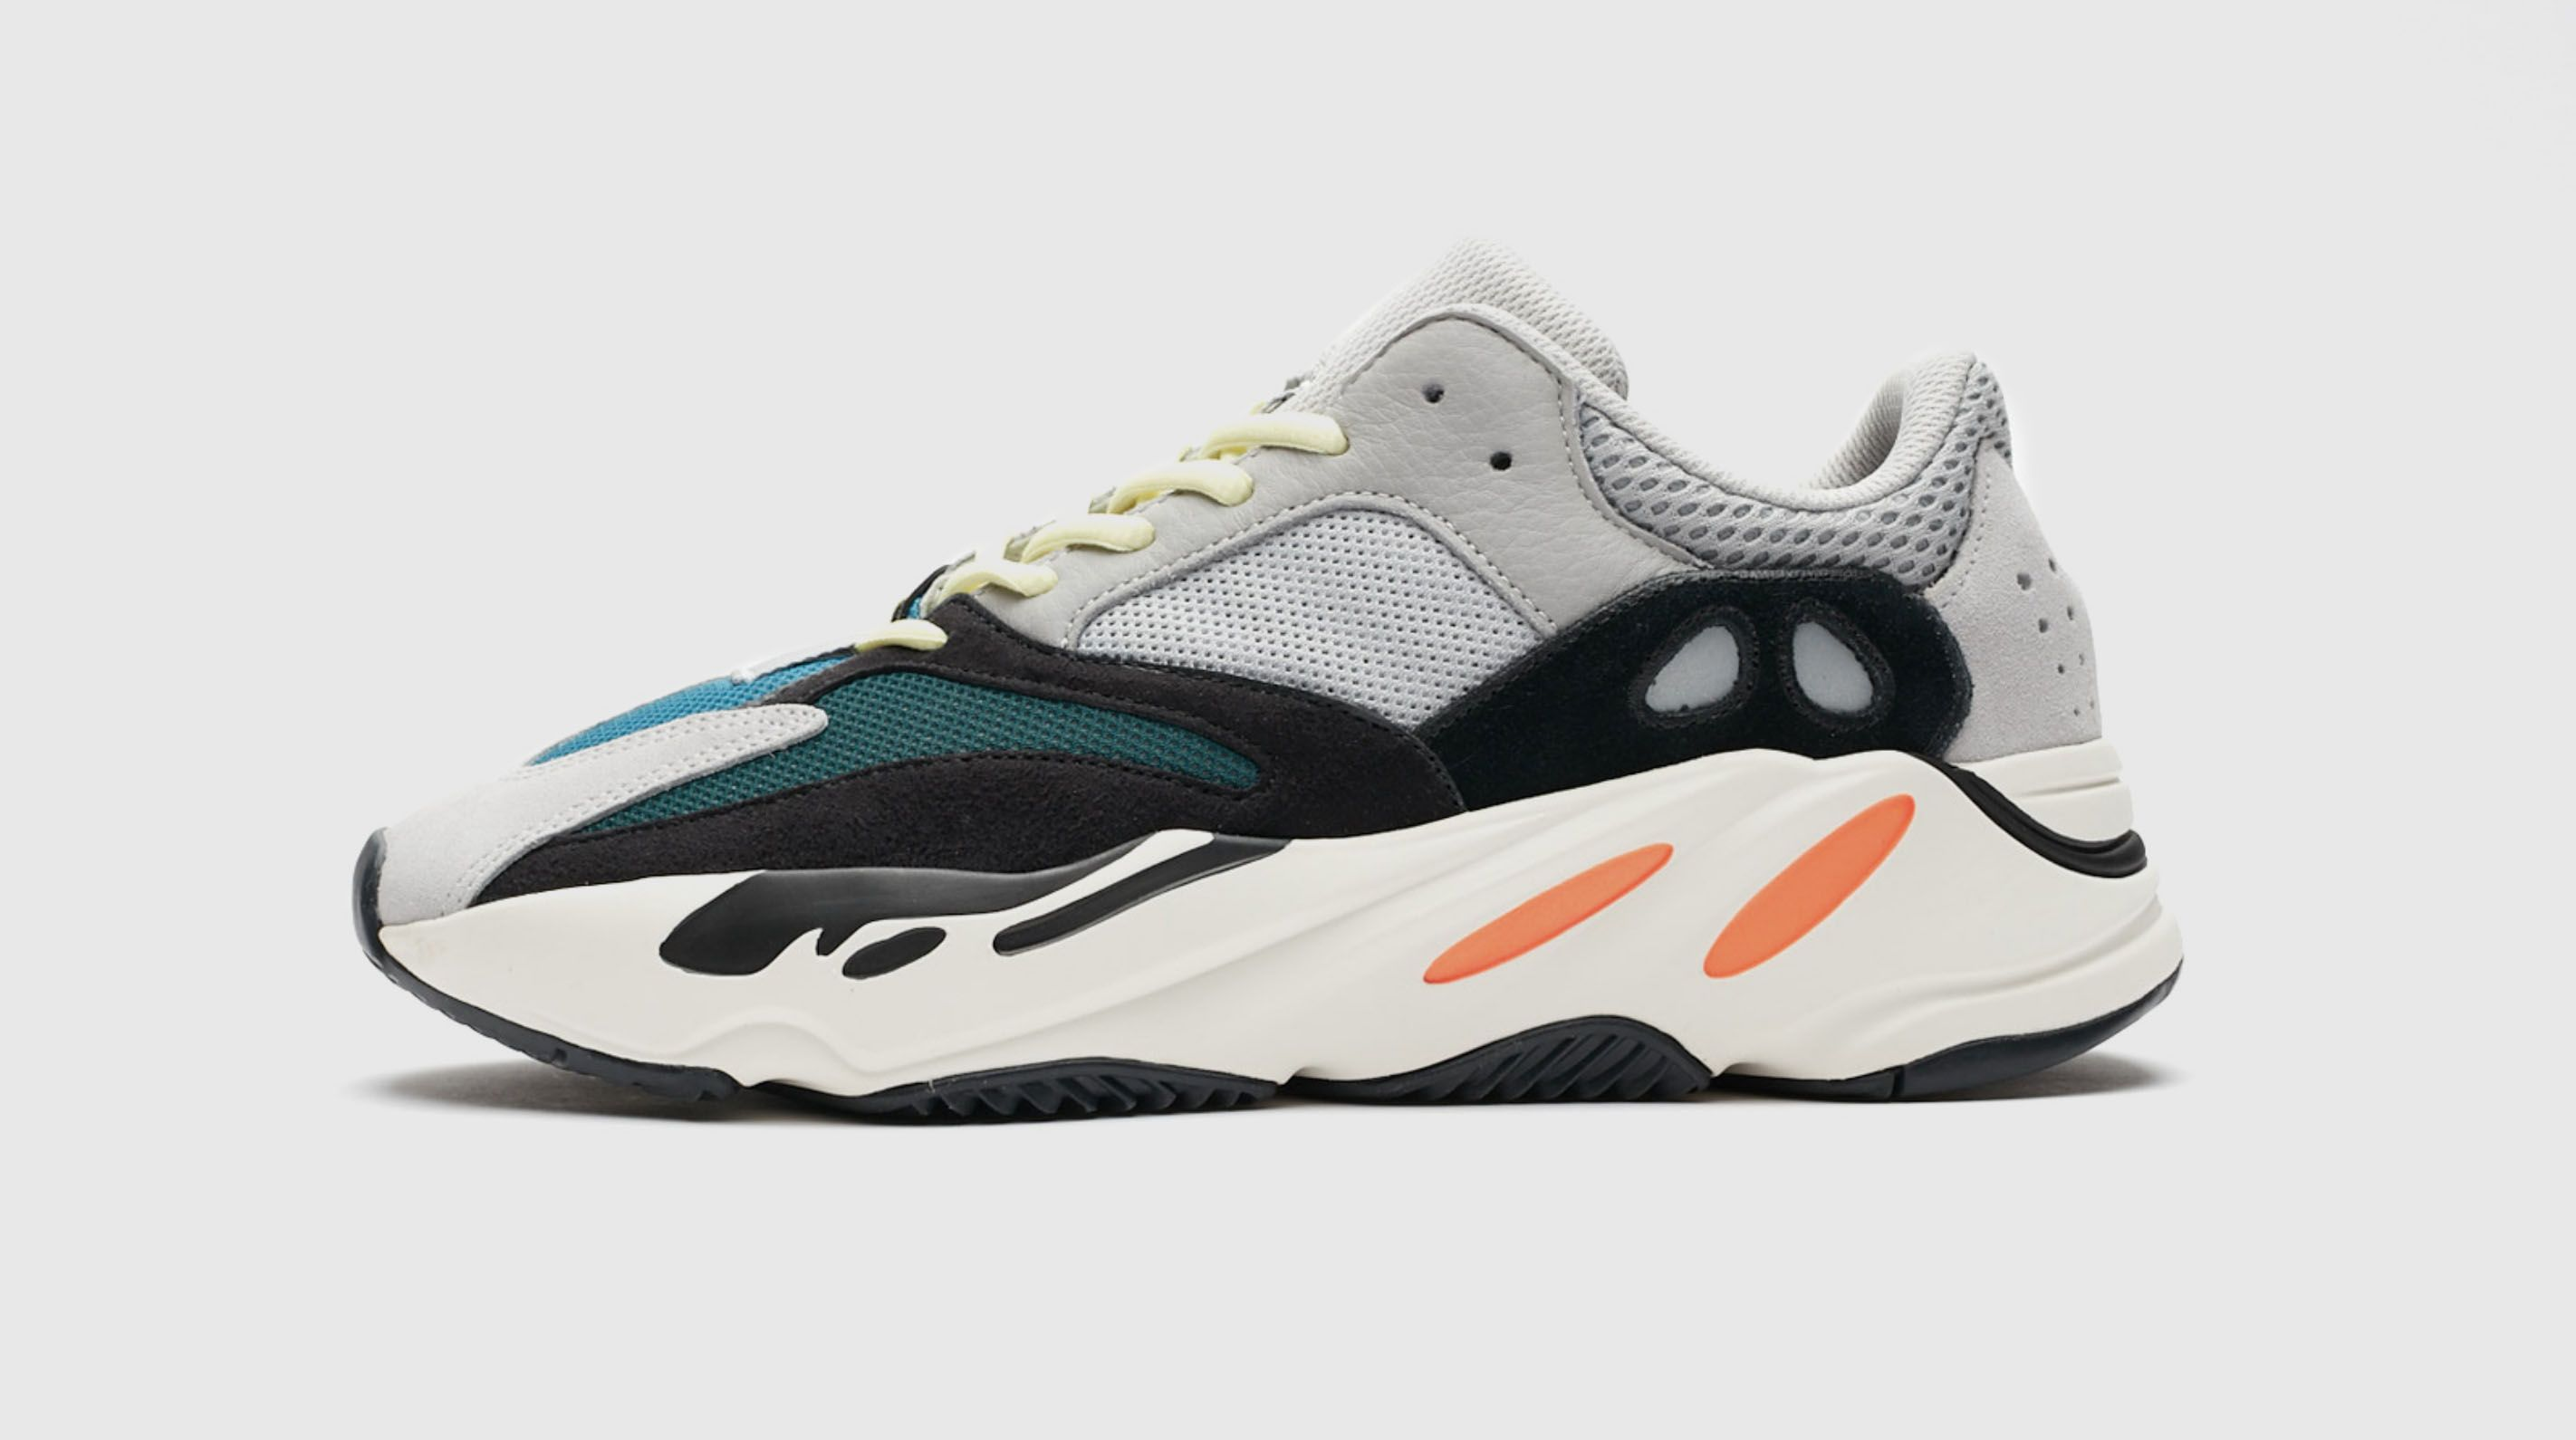 Adidas Yeezy Boost 700 Sneakers Release